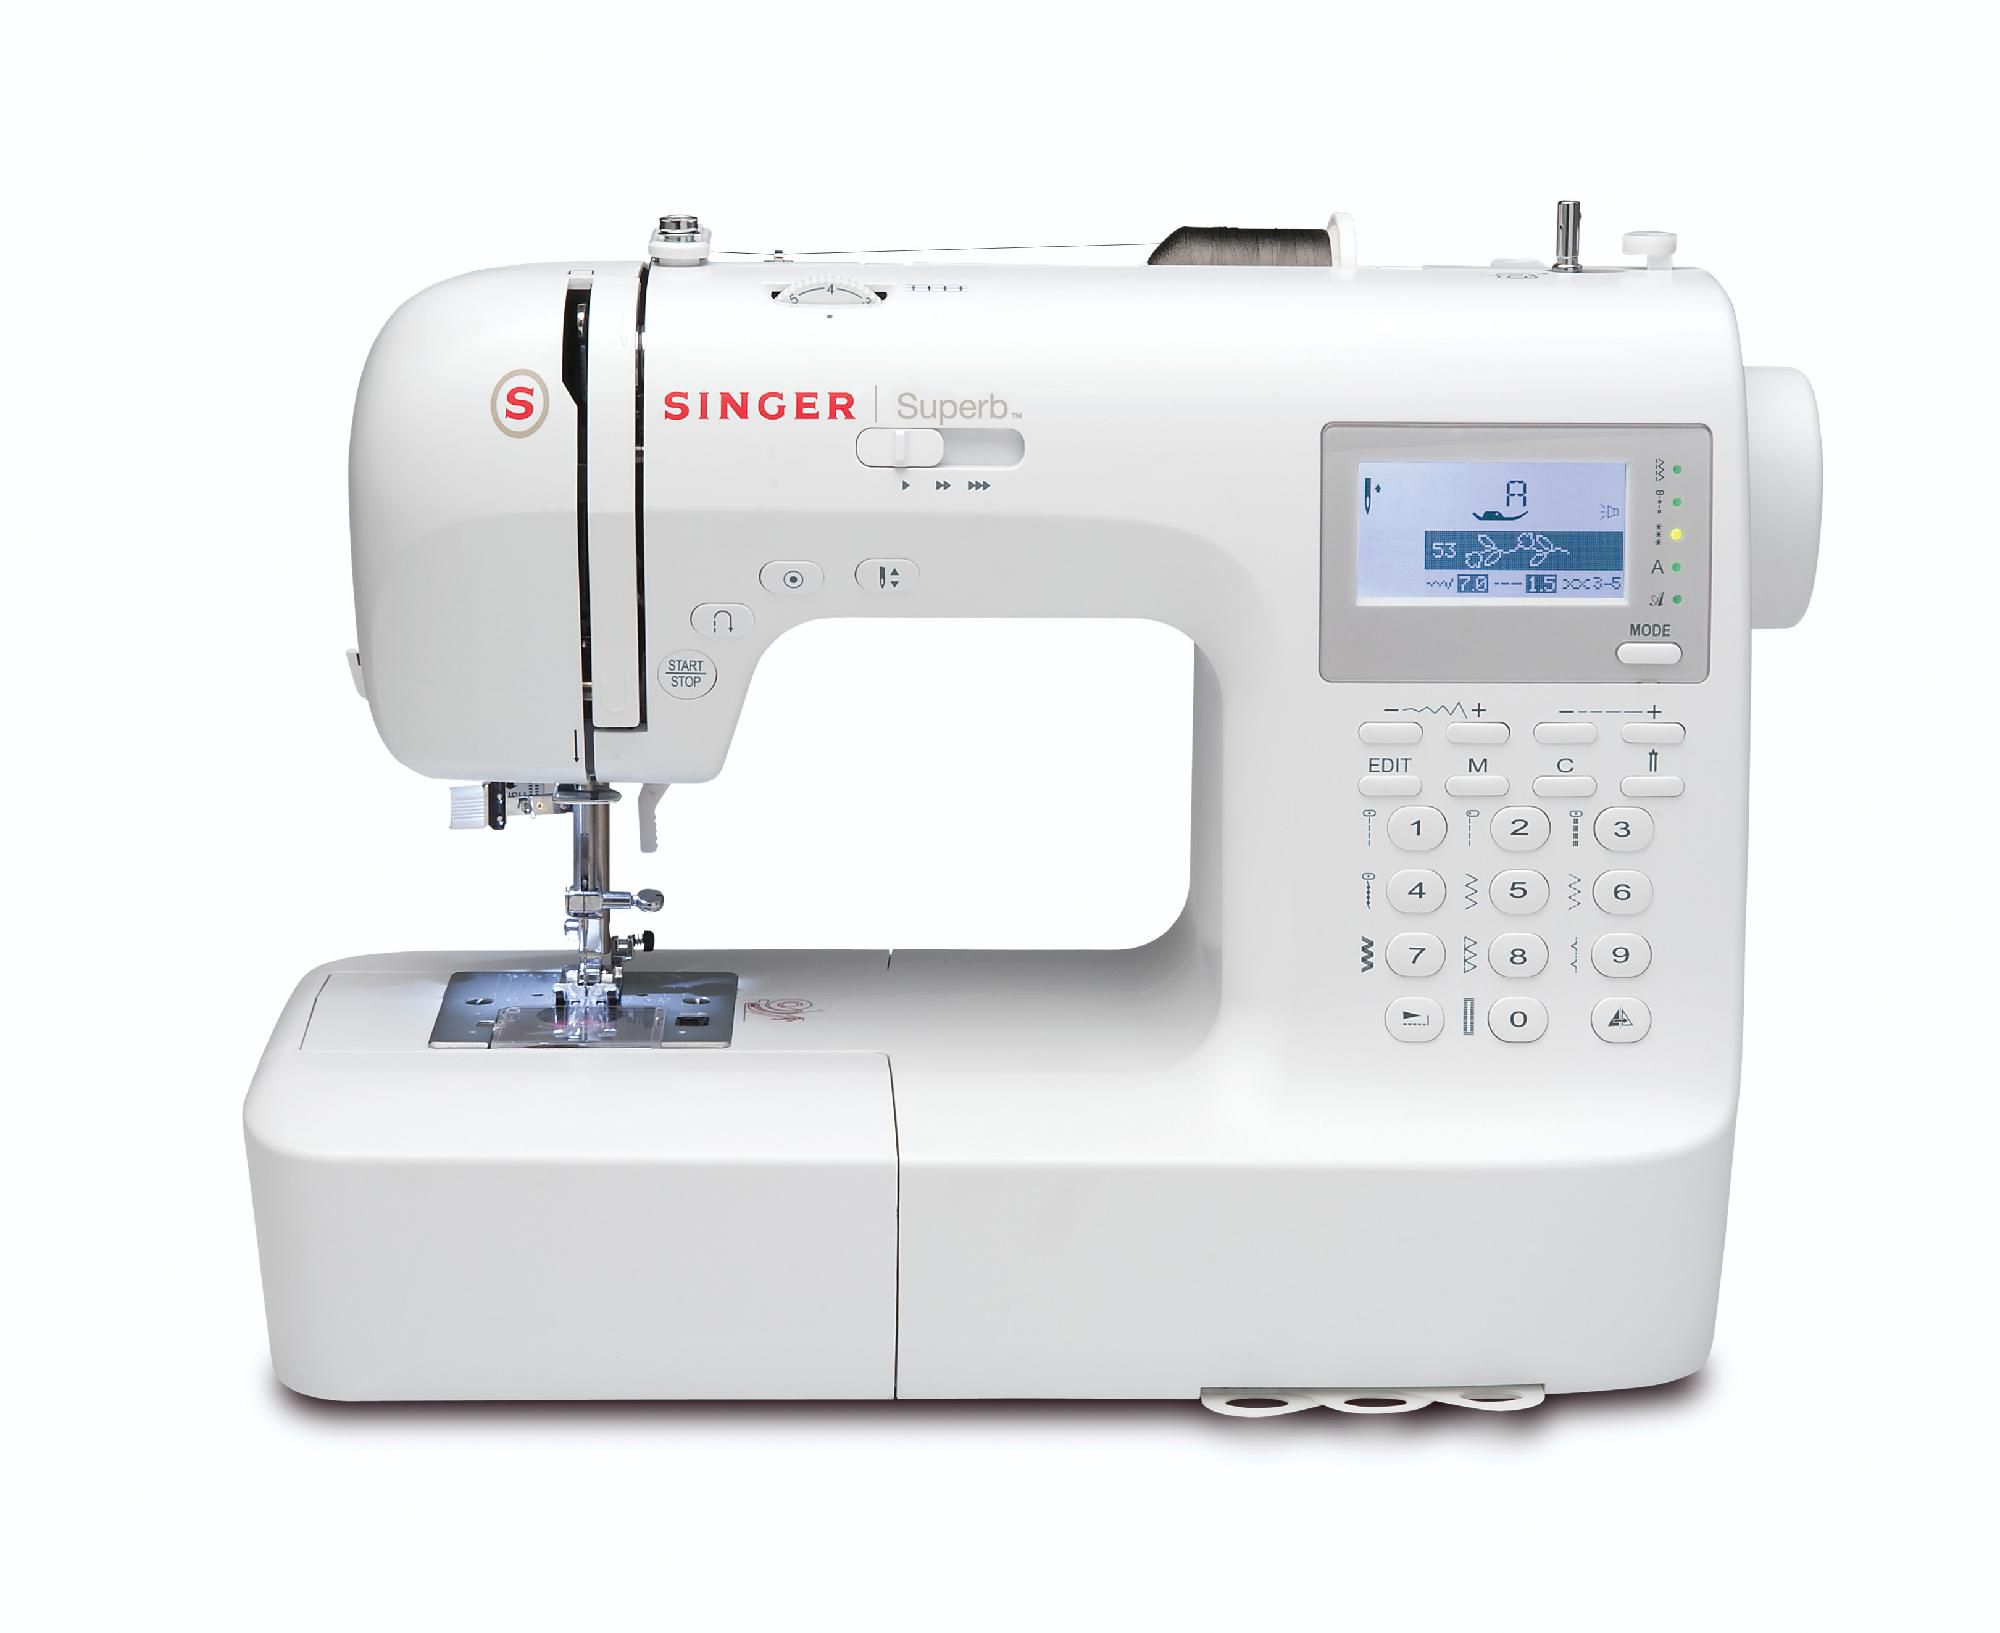 Superb Sewing Machine